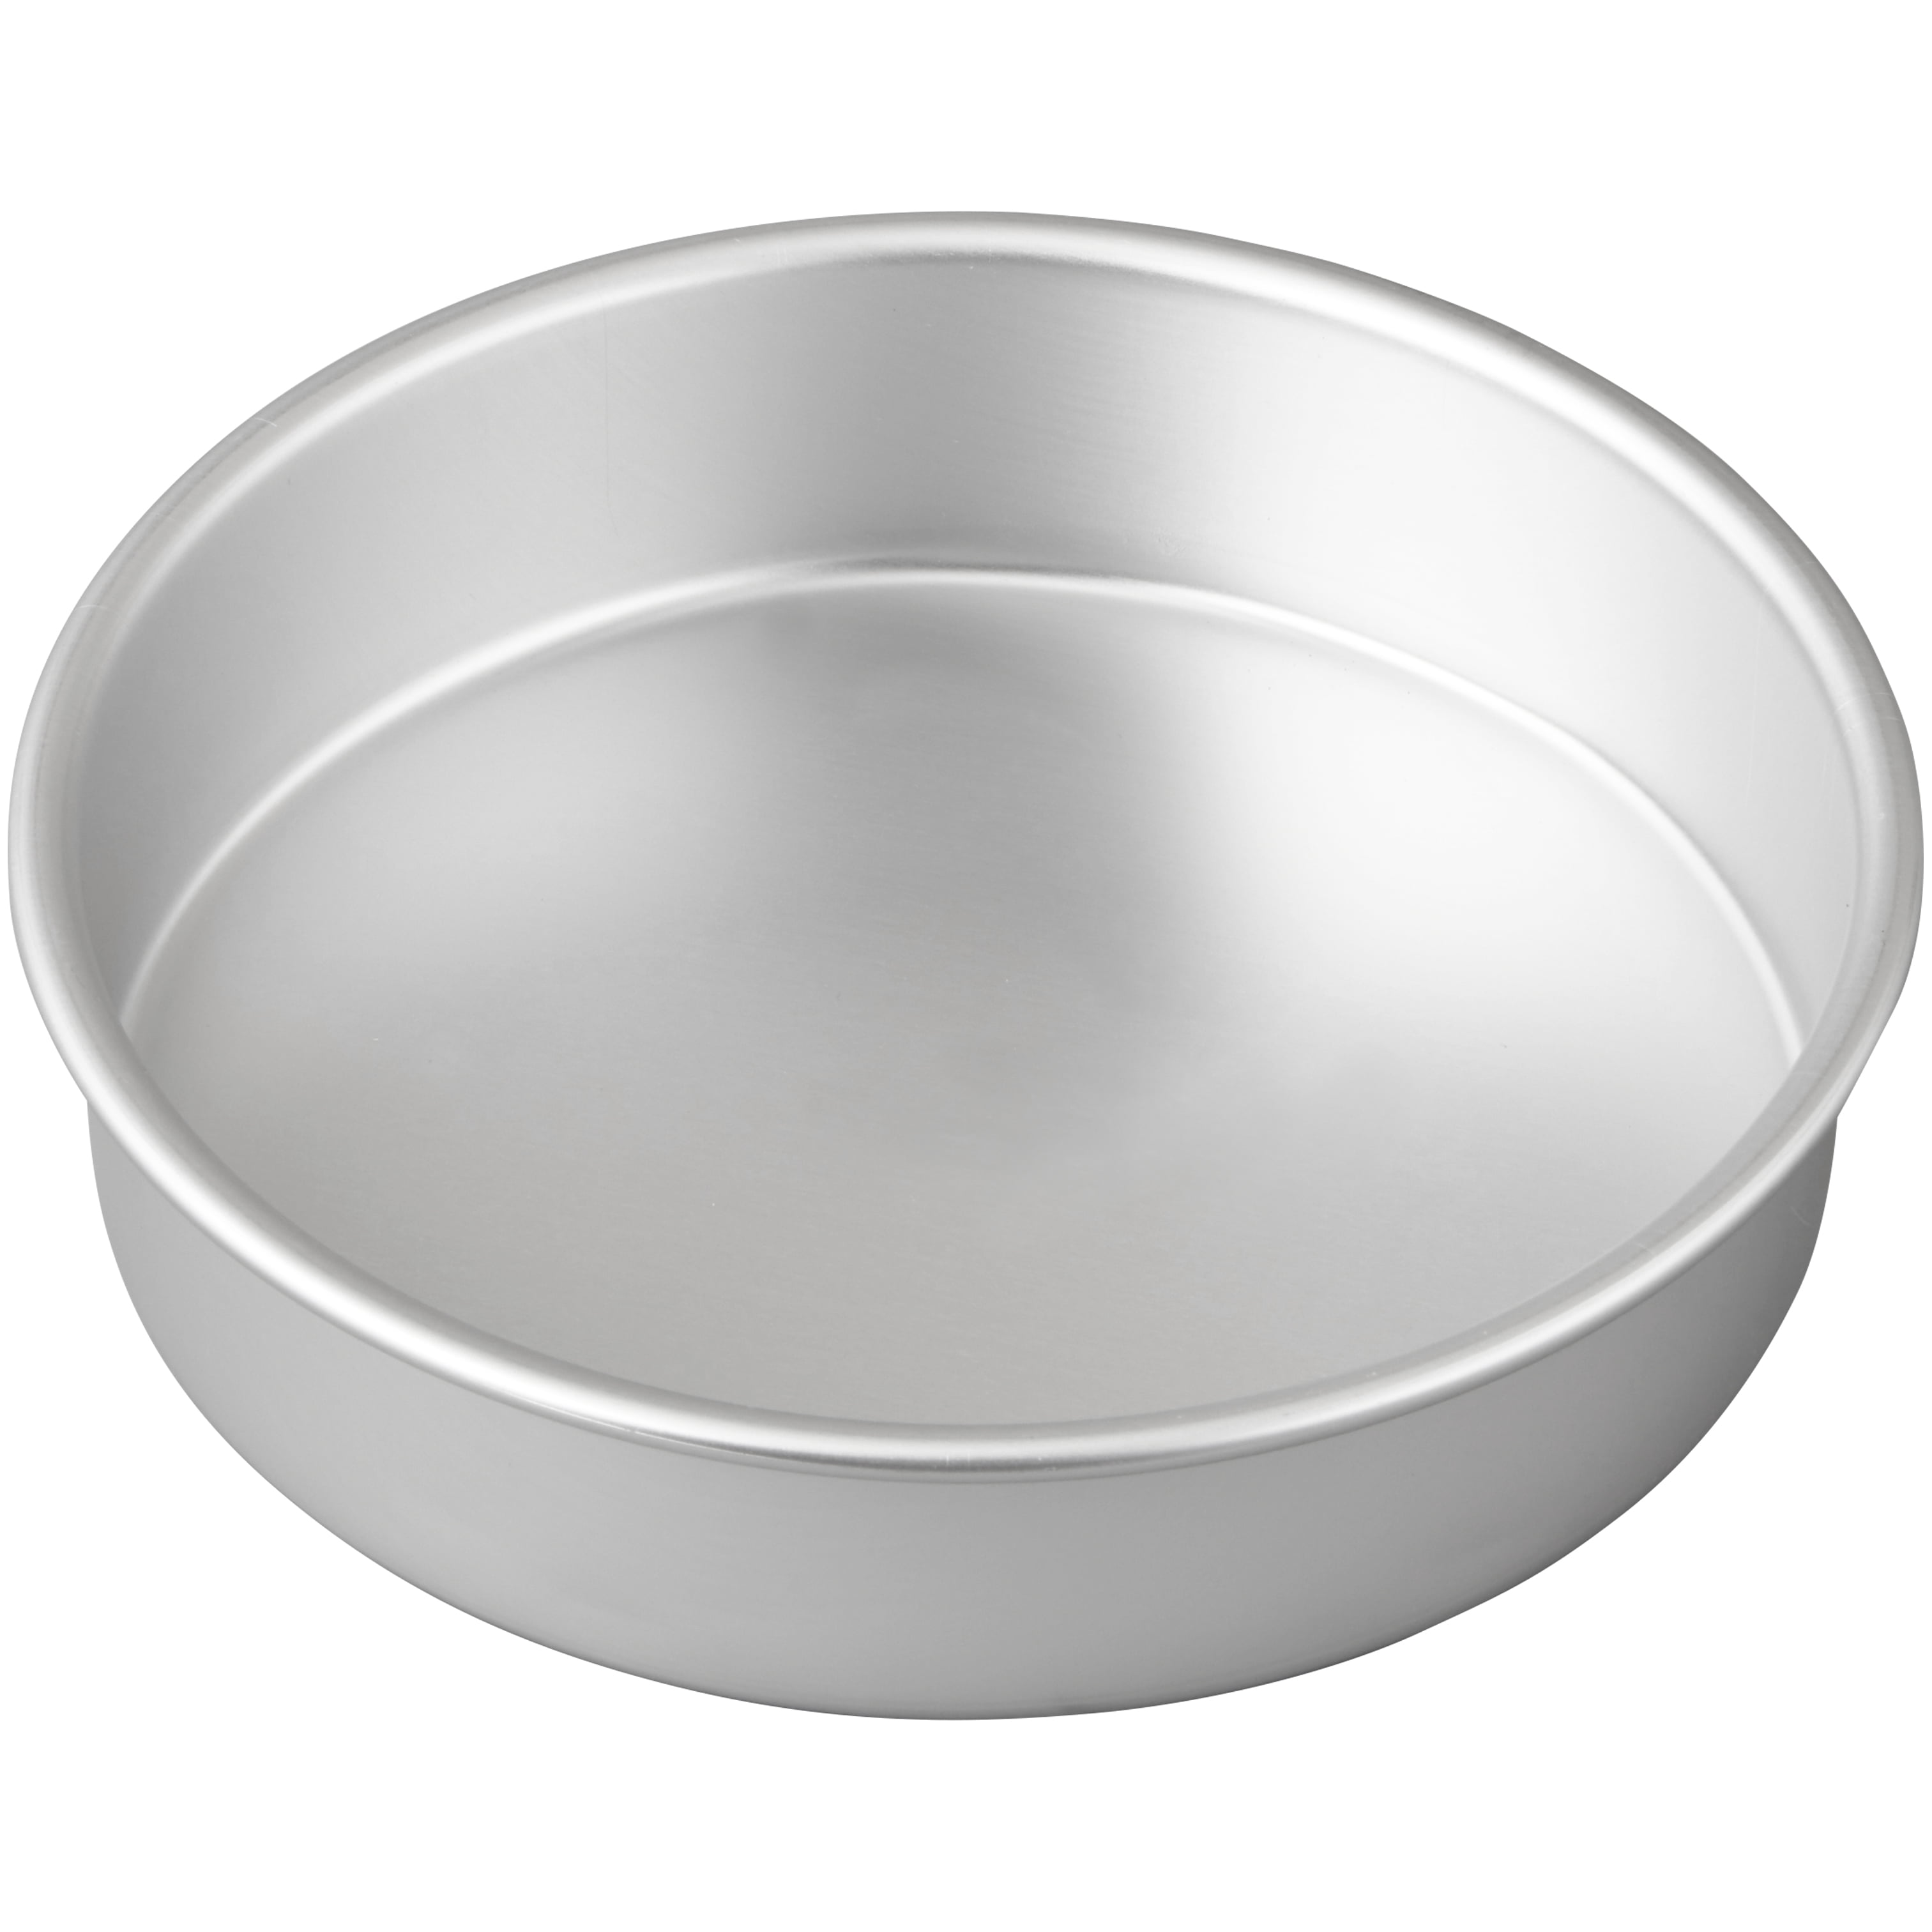 Wilton Performance Pans Aluminum Round Cake Pan 8 In